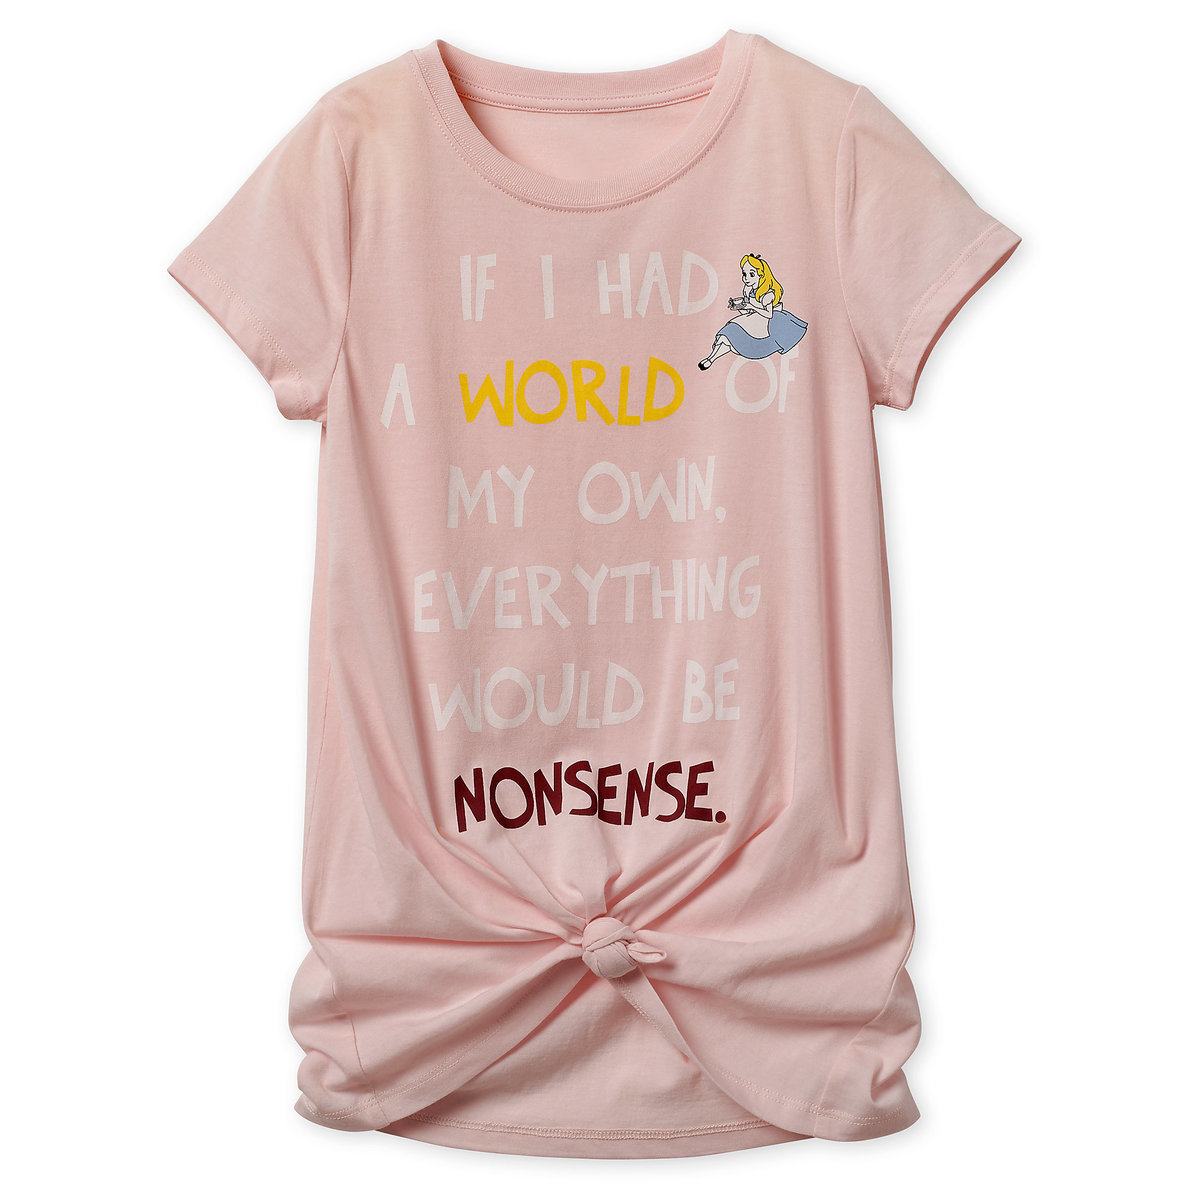 4f7fddad Product Image of Alice in Wonderland Knotted T-Shirt for Girls # 1